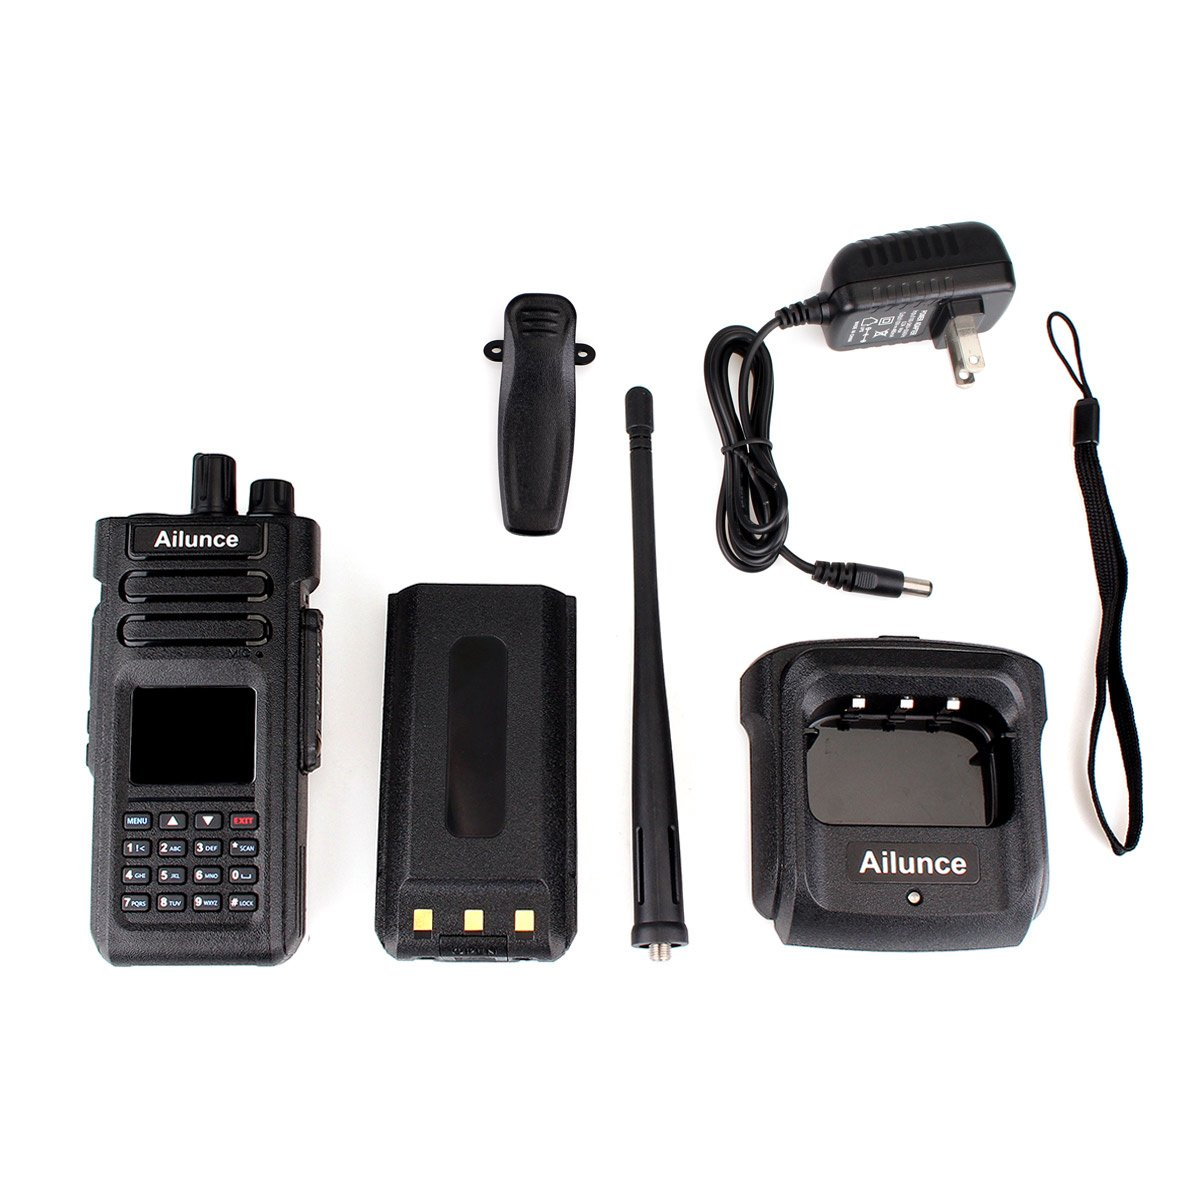 Ailunce HD1 DMR Digital Ham Radio Dual Band Dual Time Slot 10W 3000Channels 100000 Contacts 3200mAhz Waterproof long Range Two Way Radio with FM Function and Programming Cable(Black,1pack) by Ailunce (Image #8)